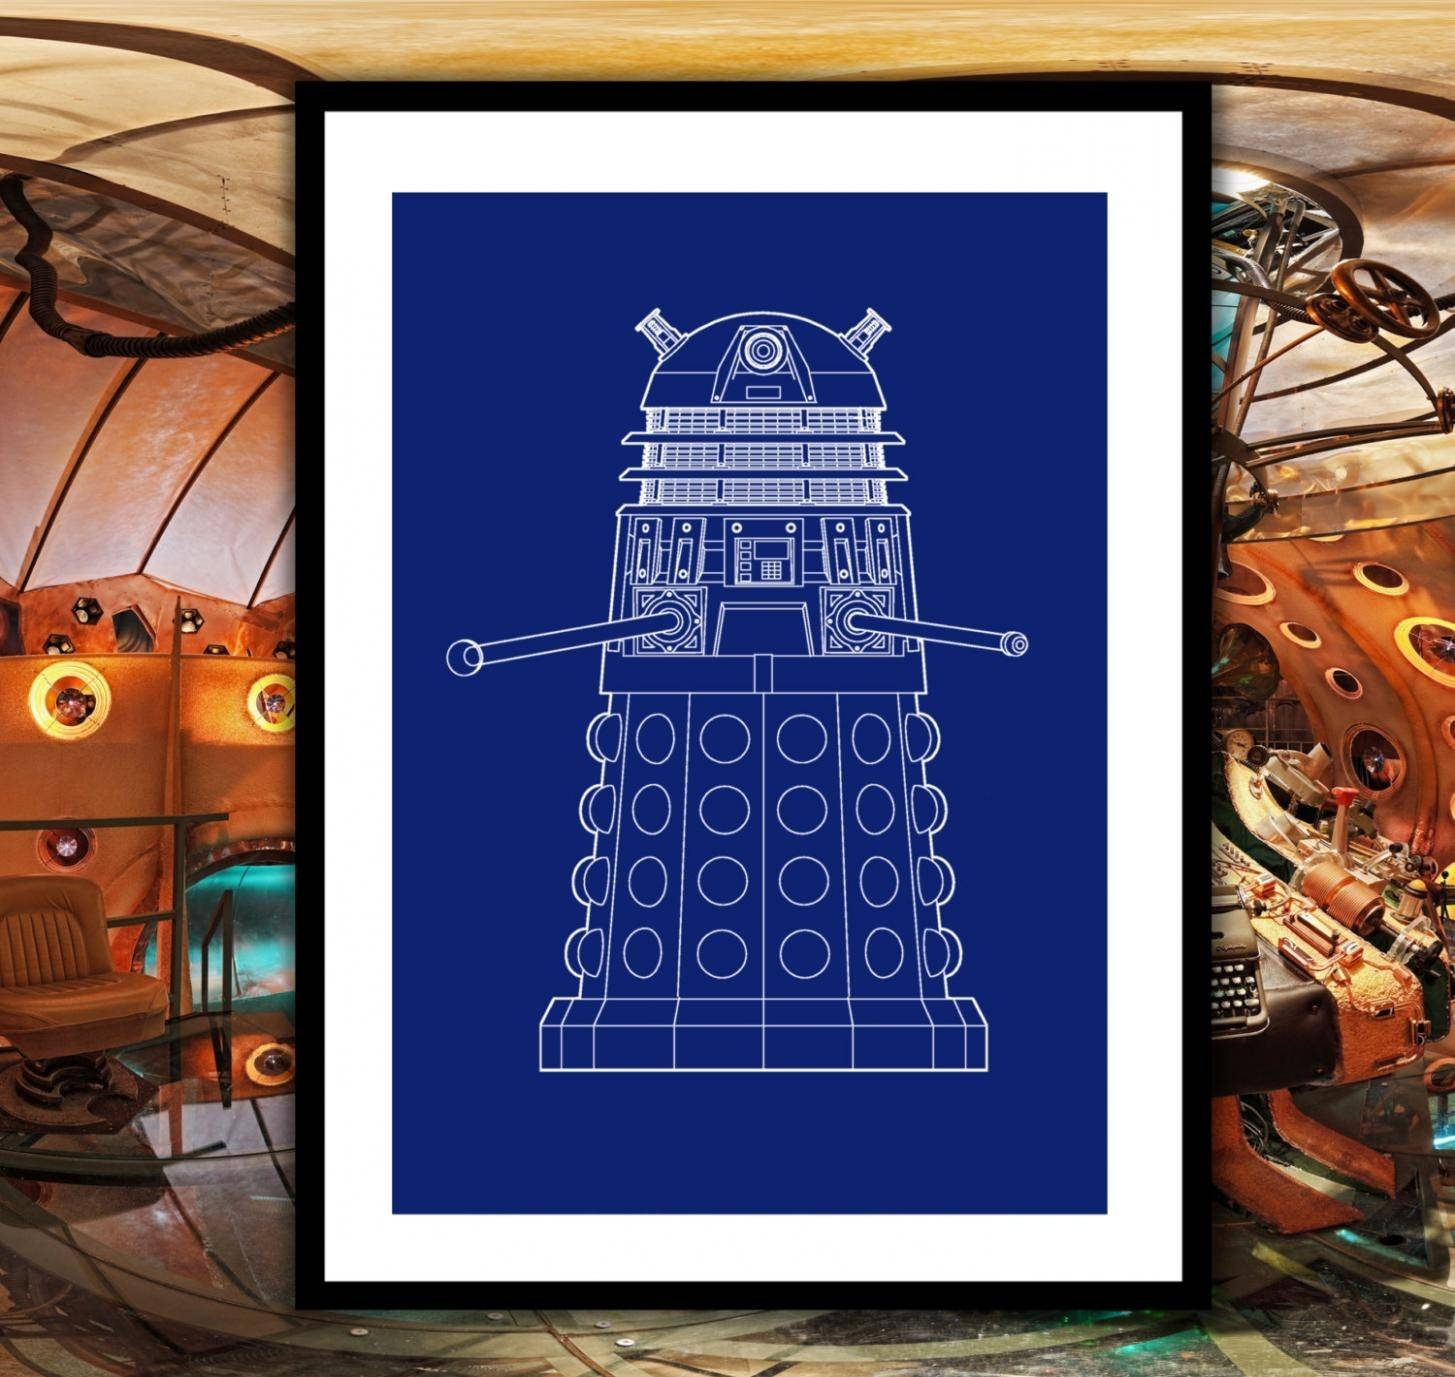 20 Best Collection Of Doctor Who Wall Art With Recent Doctor Who Wall Art (View 6 of 33)